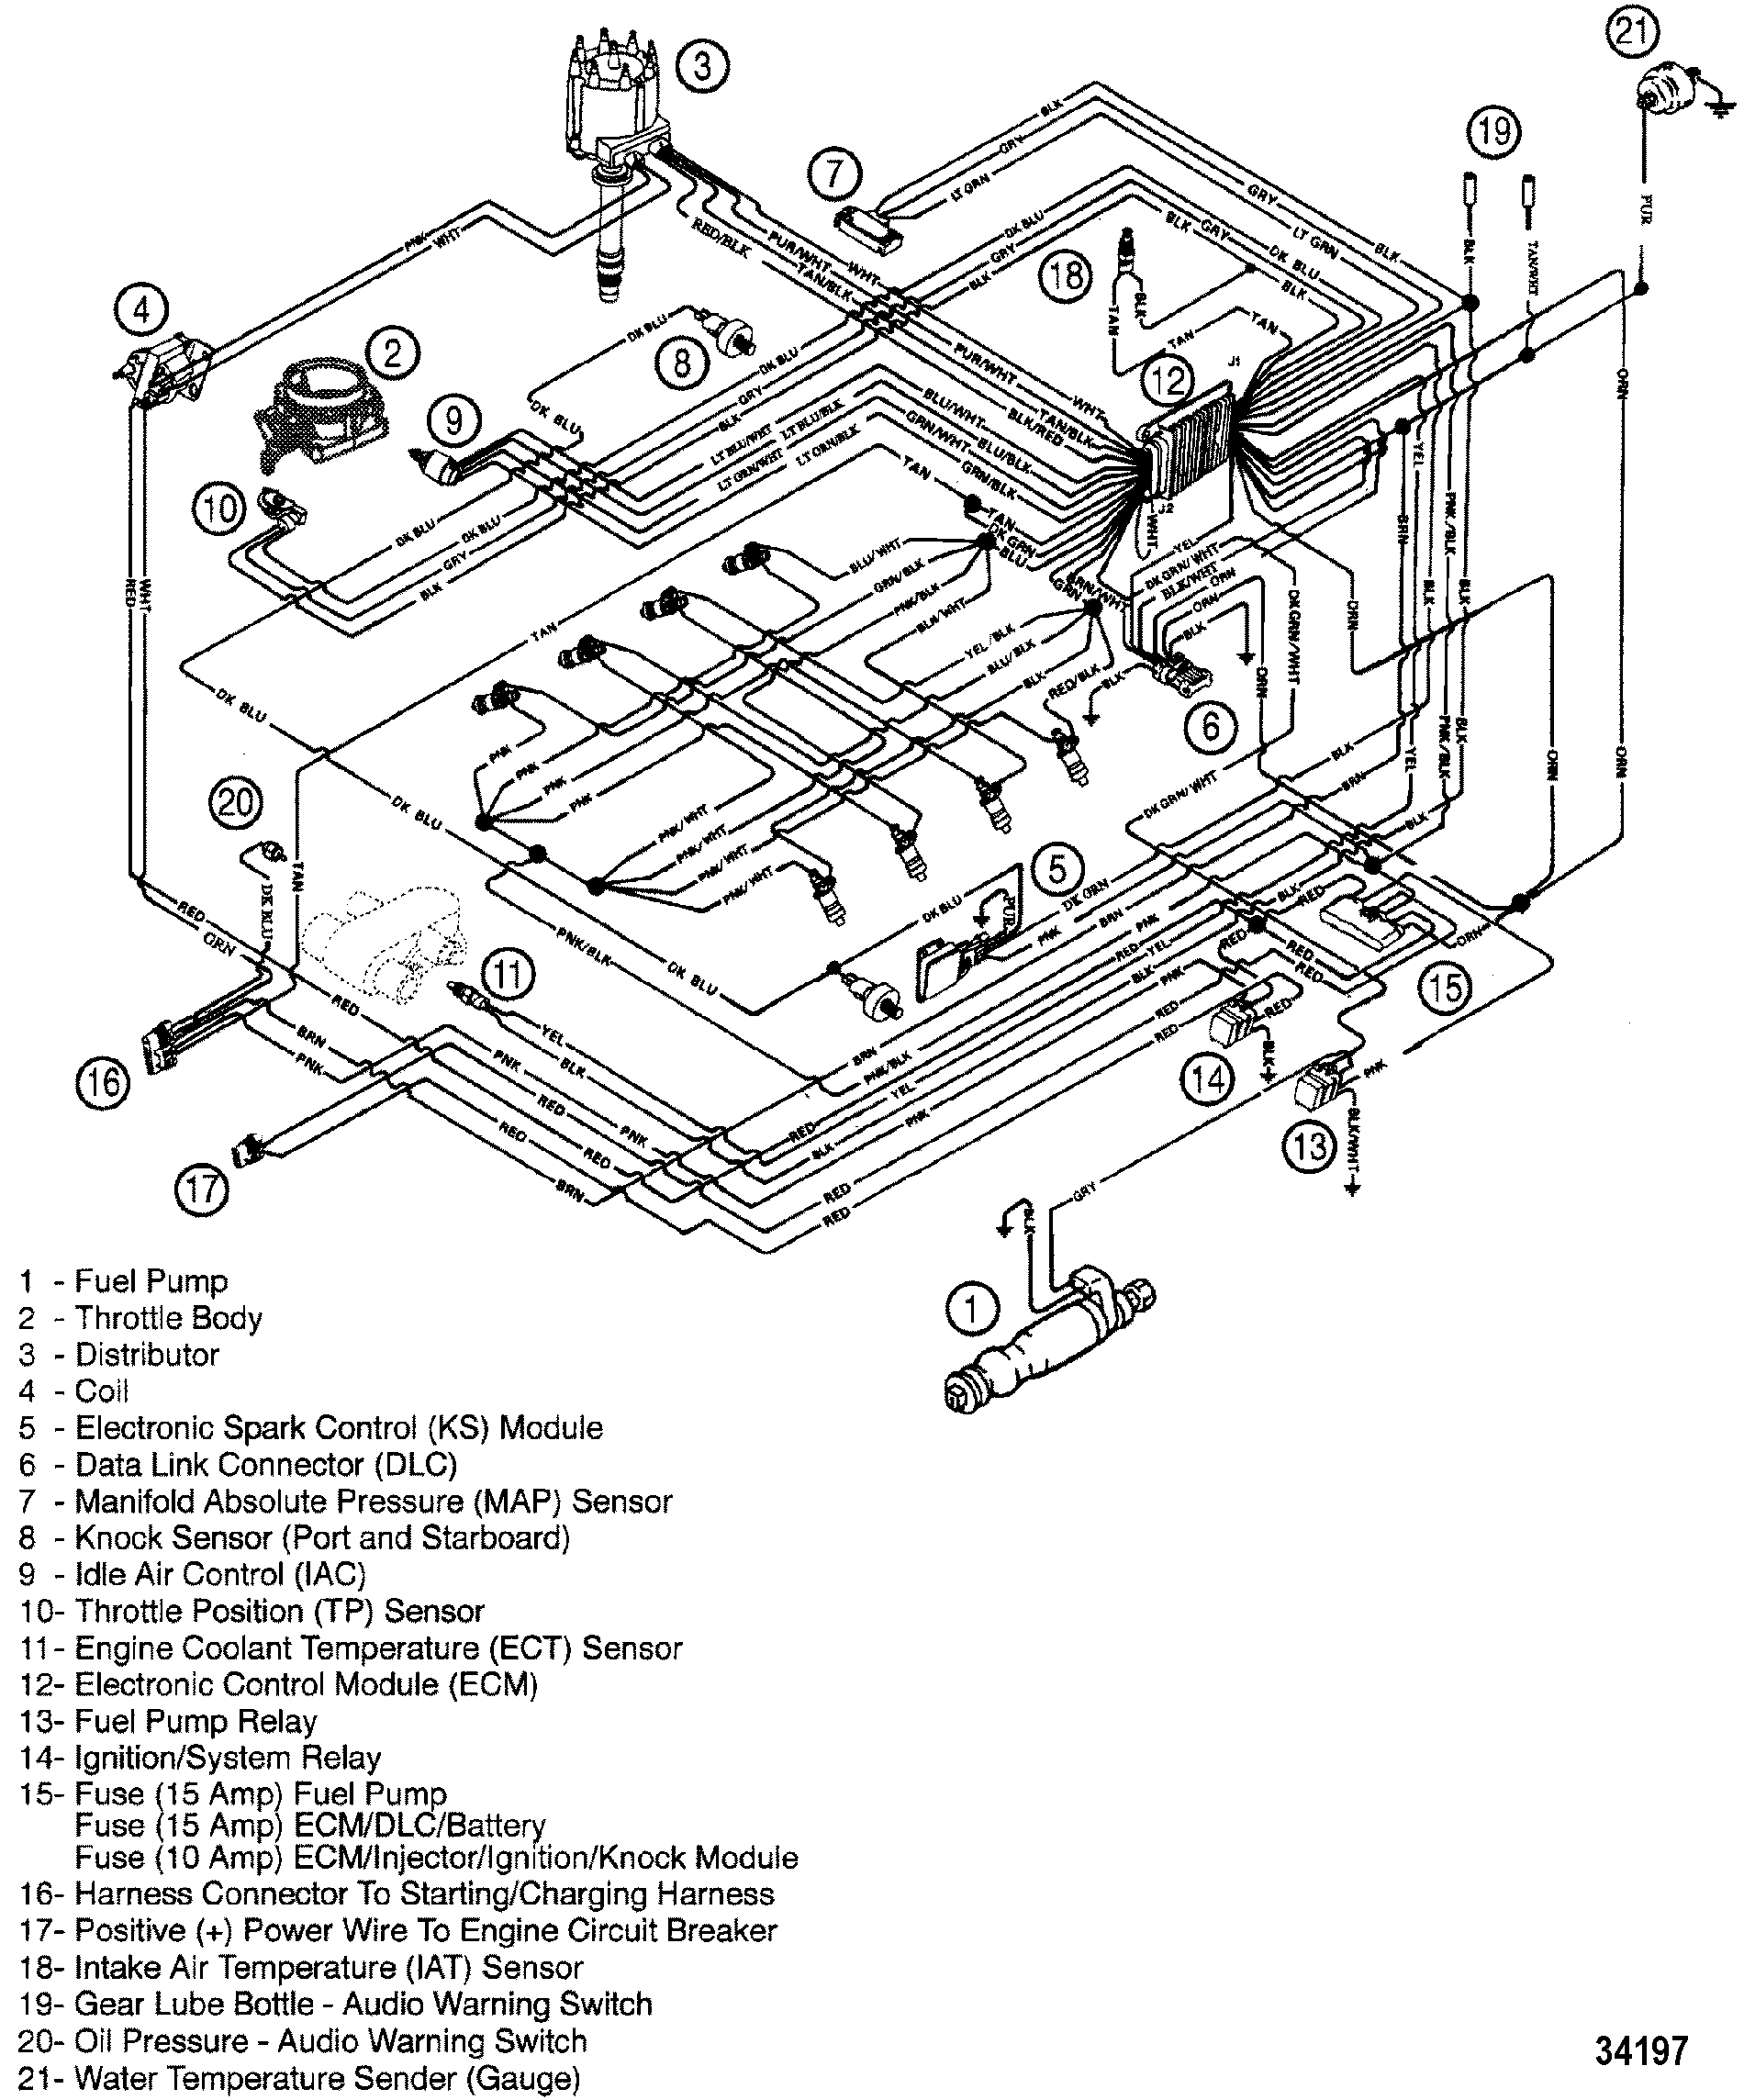 34197 cp performance wiring harness (efi) mercruiser wiring schematic at mifinder.co